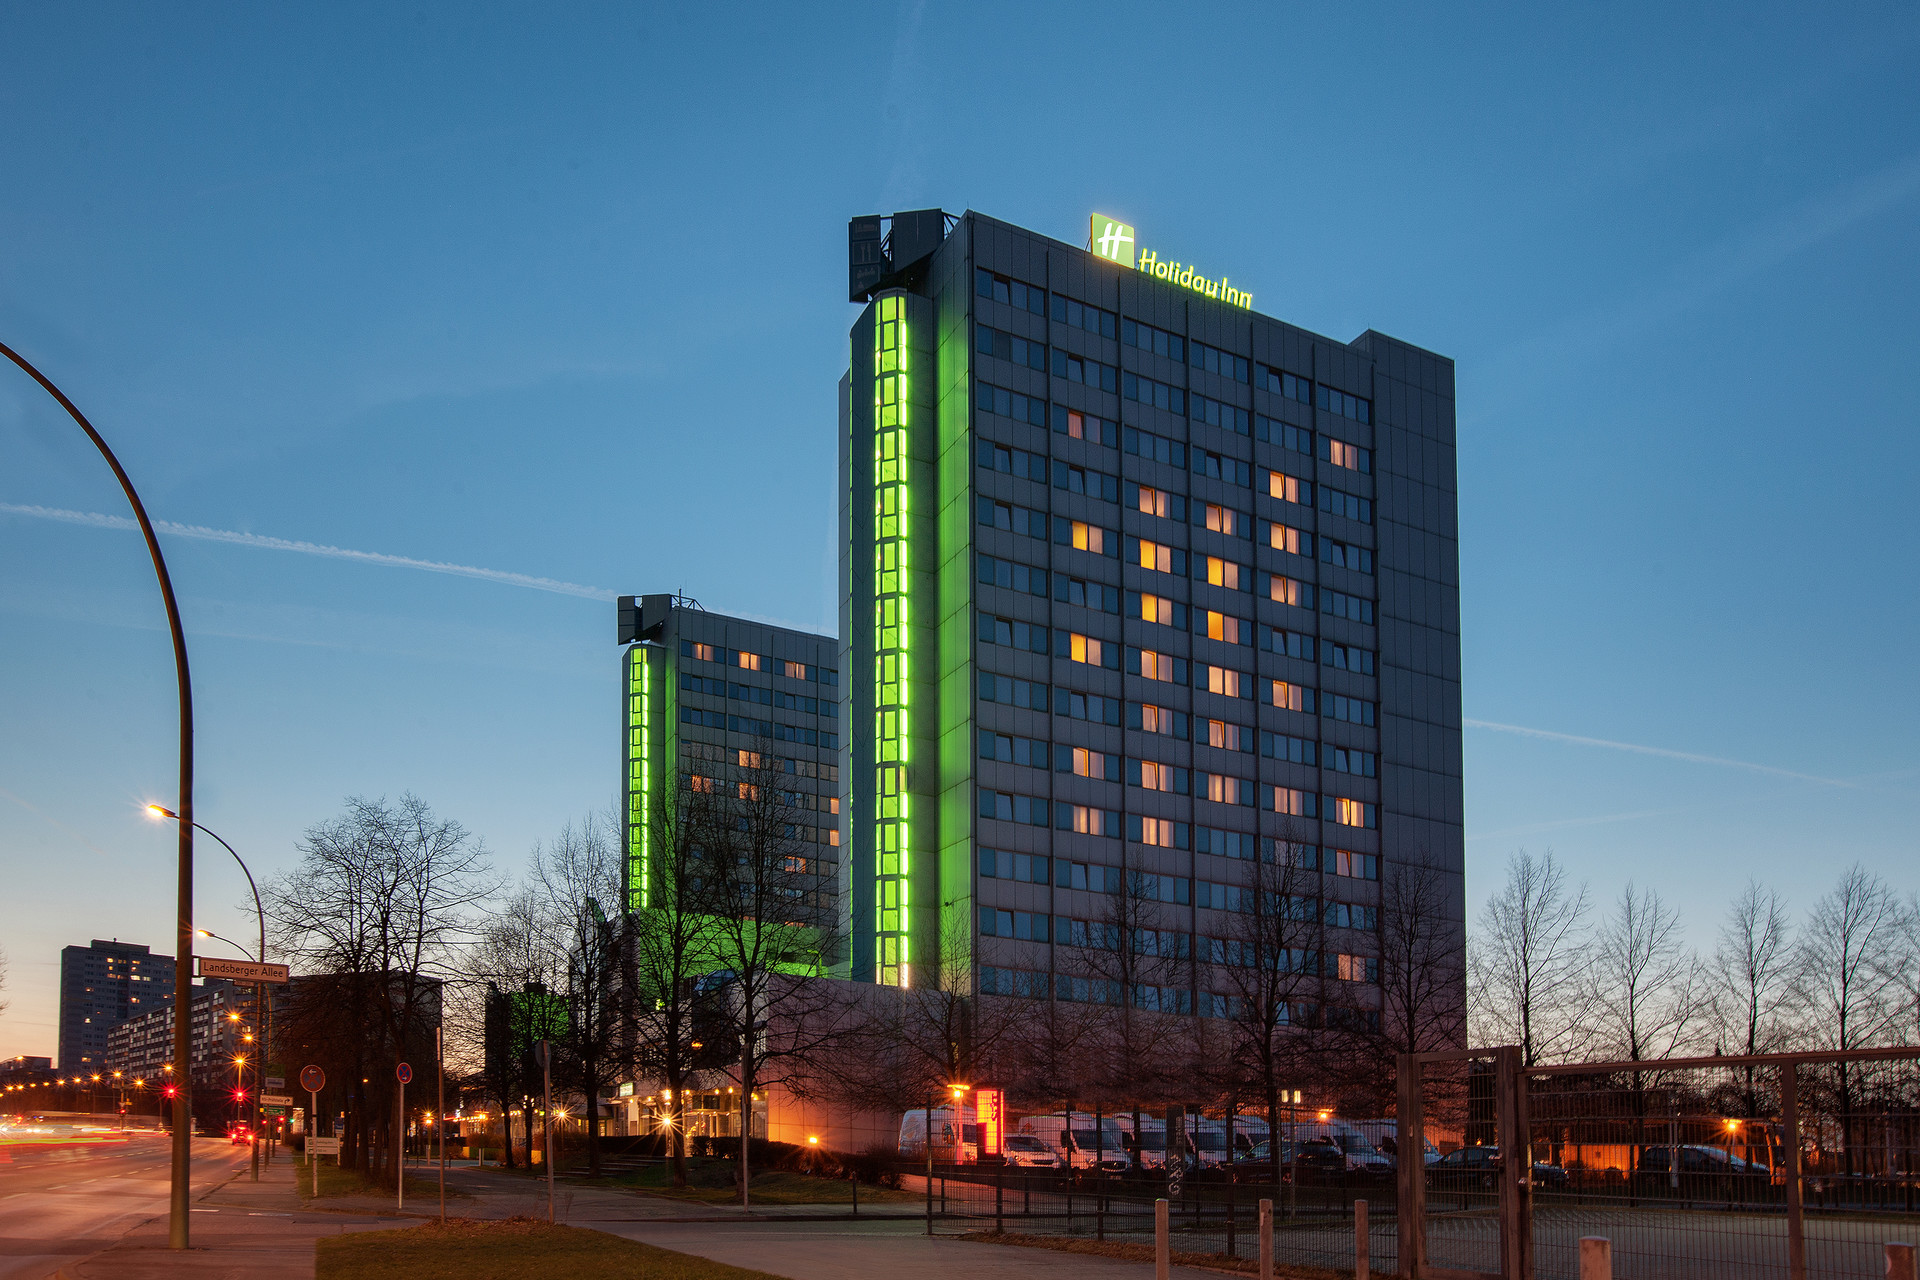 Holiday Inn Hotel Berlin City East